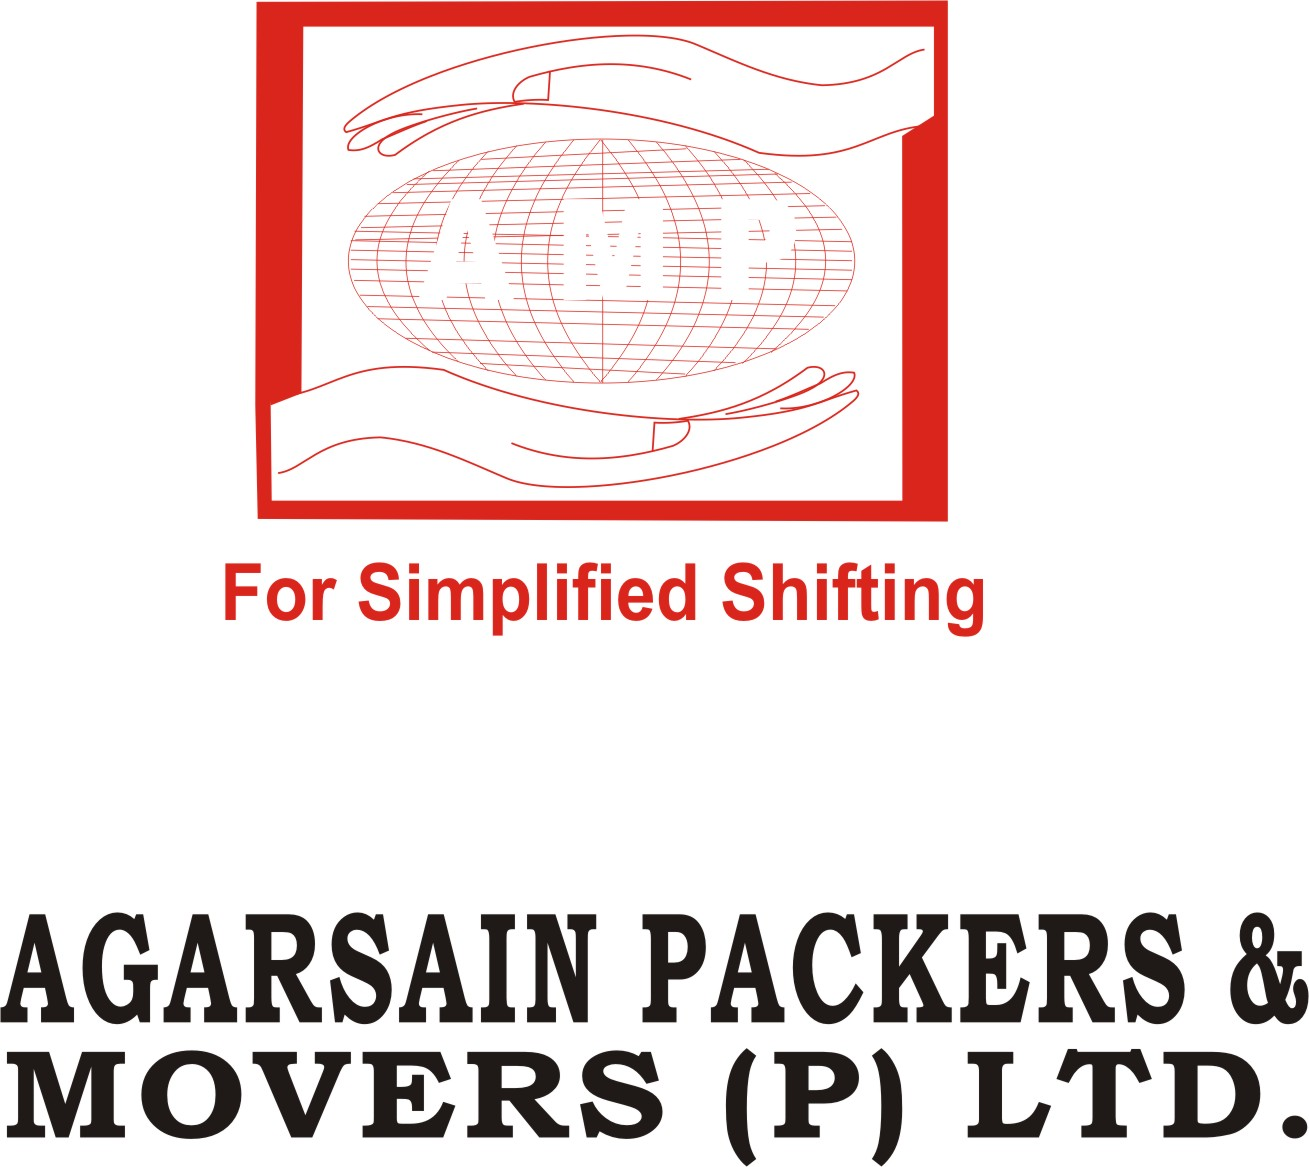 Agarsain Packers & Movers Pvt Ltd